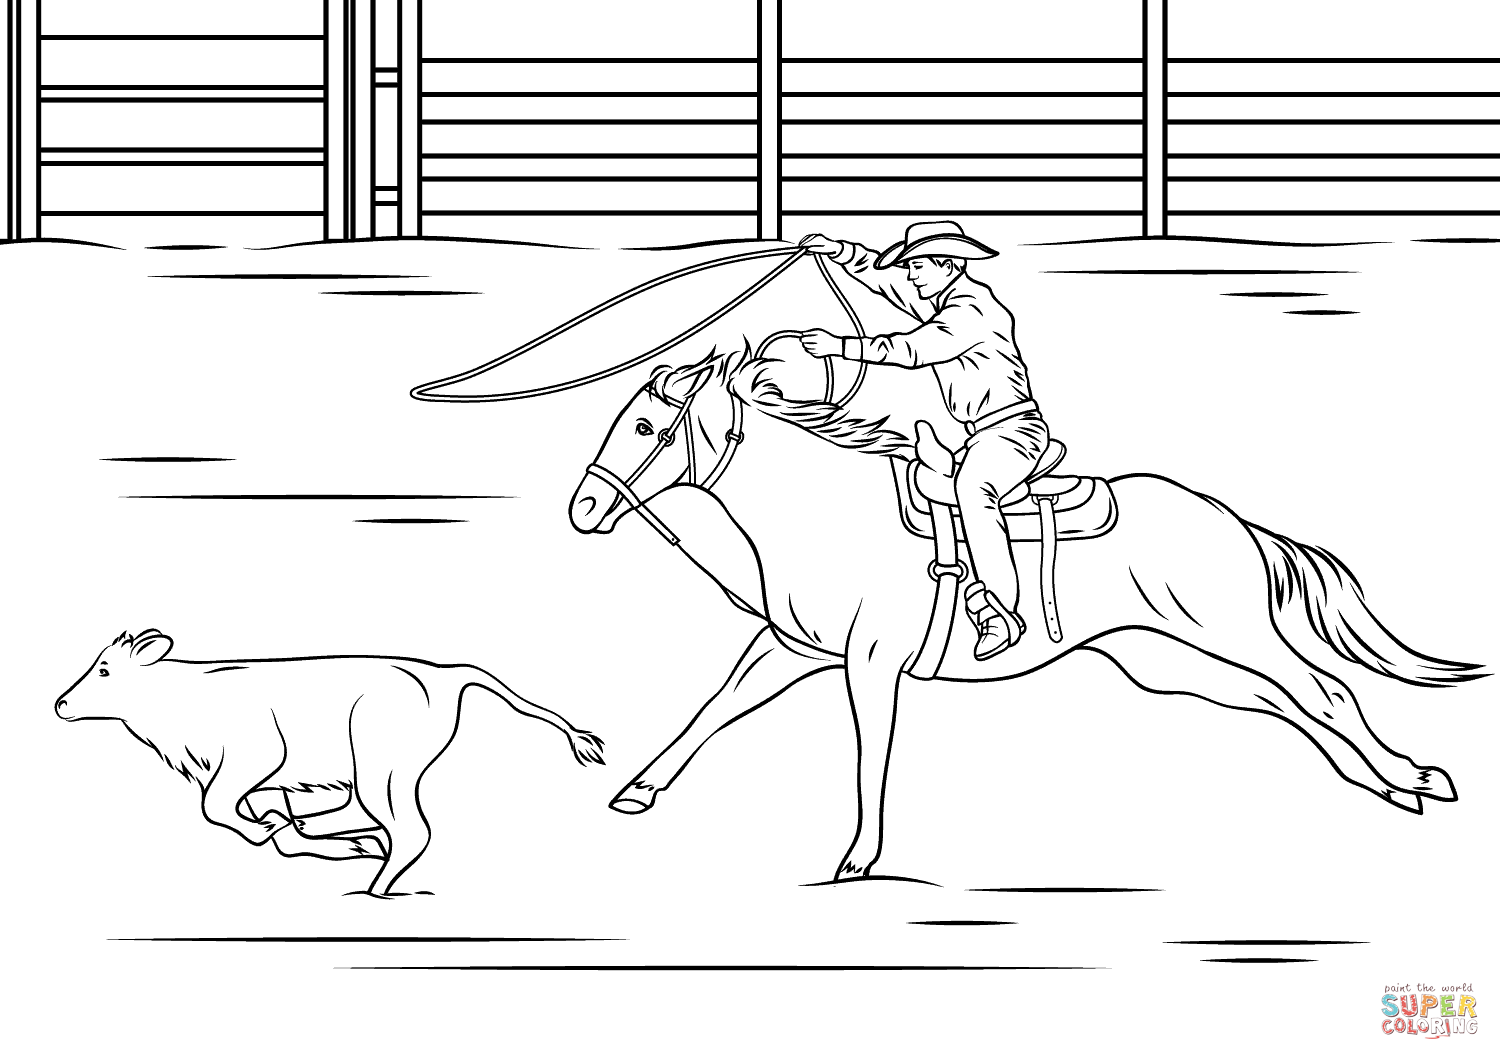 Calf Roping Rodeo Coloring Page From Rodeo Category